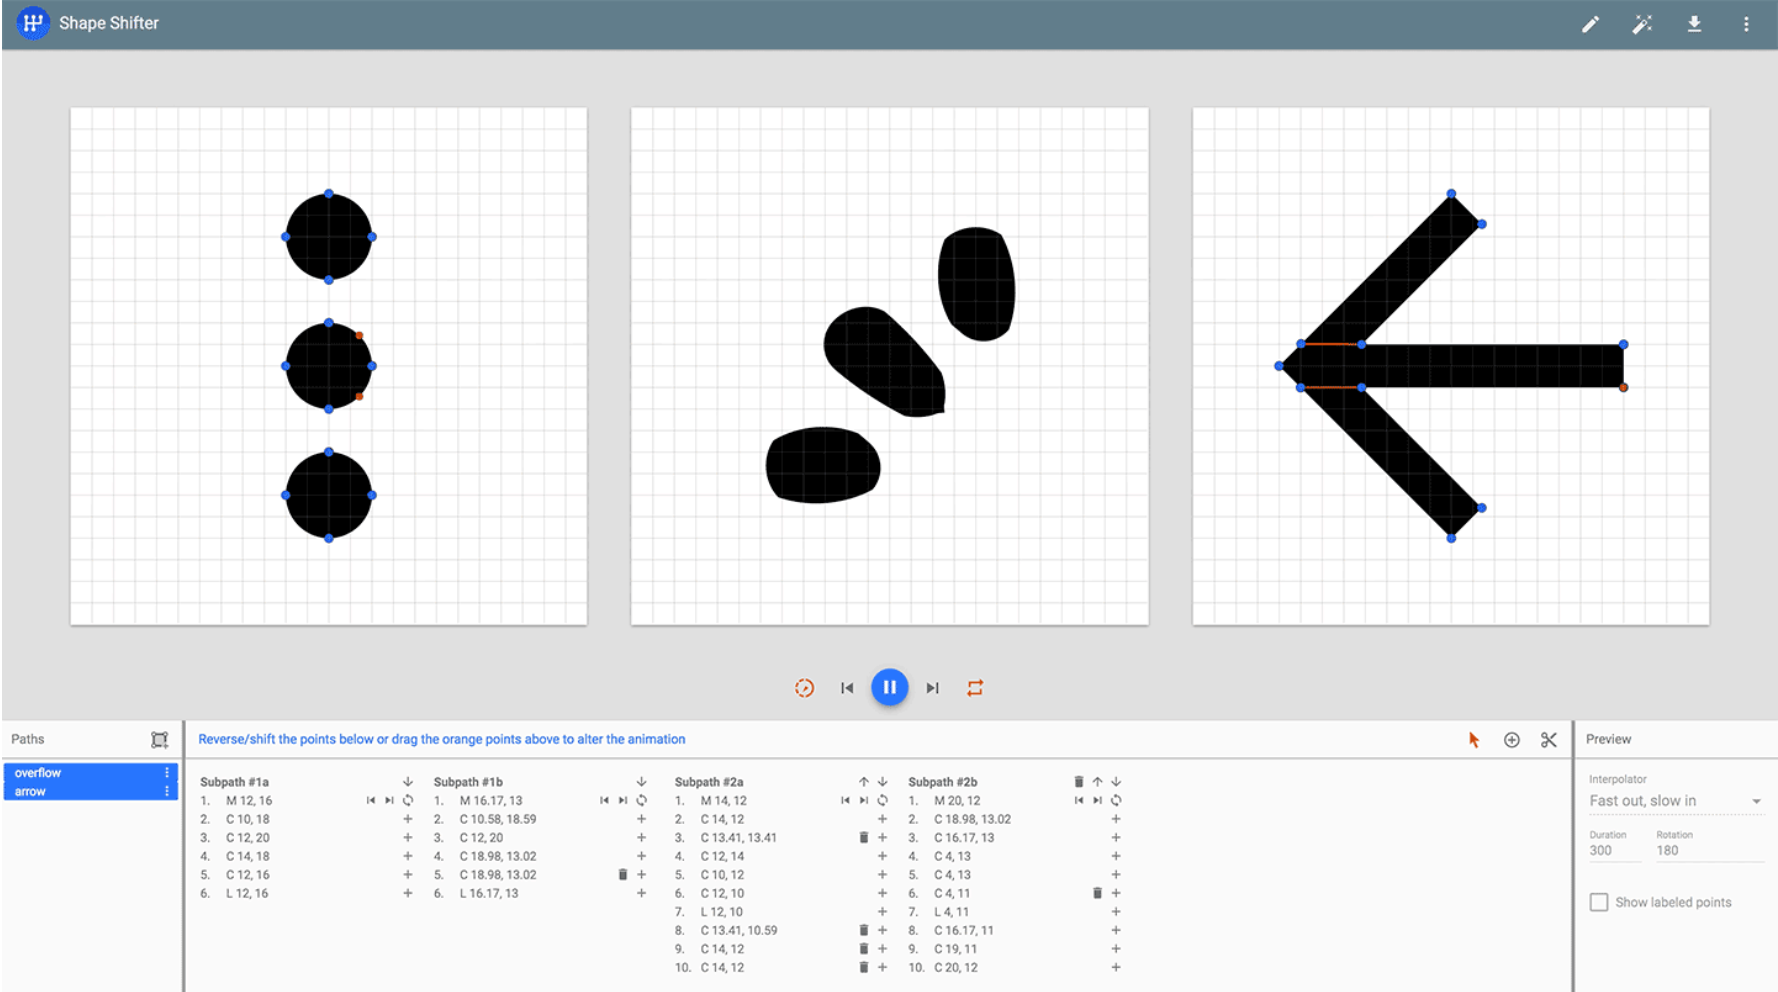 Shape Shifter Webapp that simplifies the process of